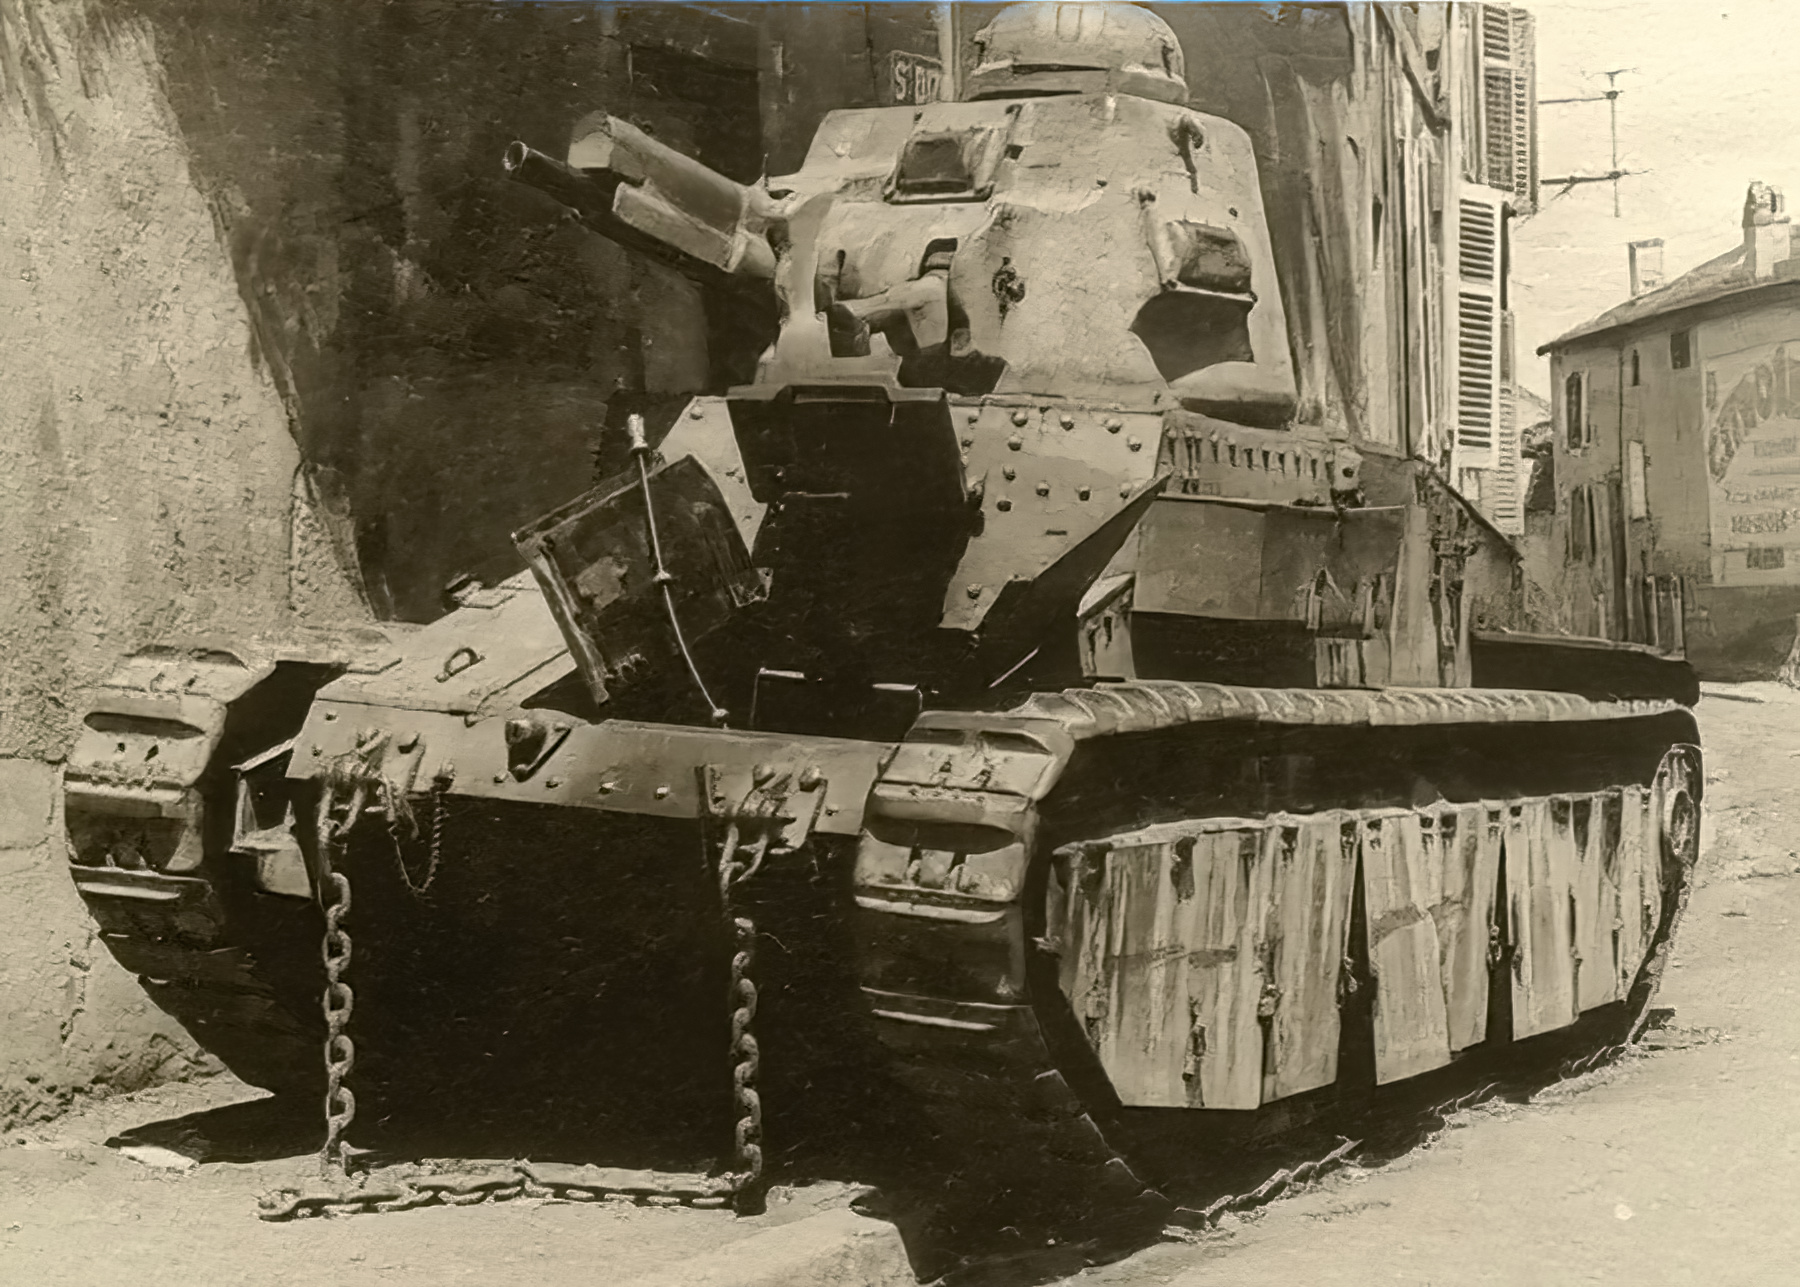 French Army Renault Char D1 abandoned during the Weygand Plan France 1940 ebay 01